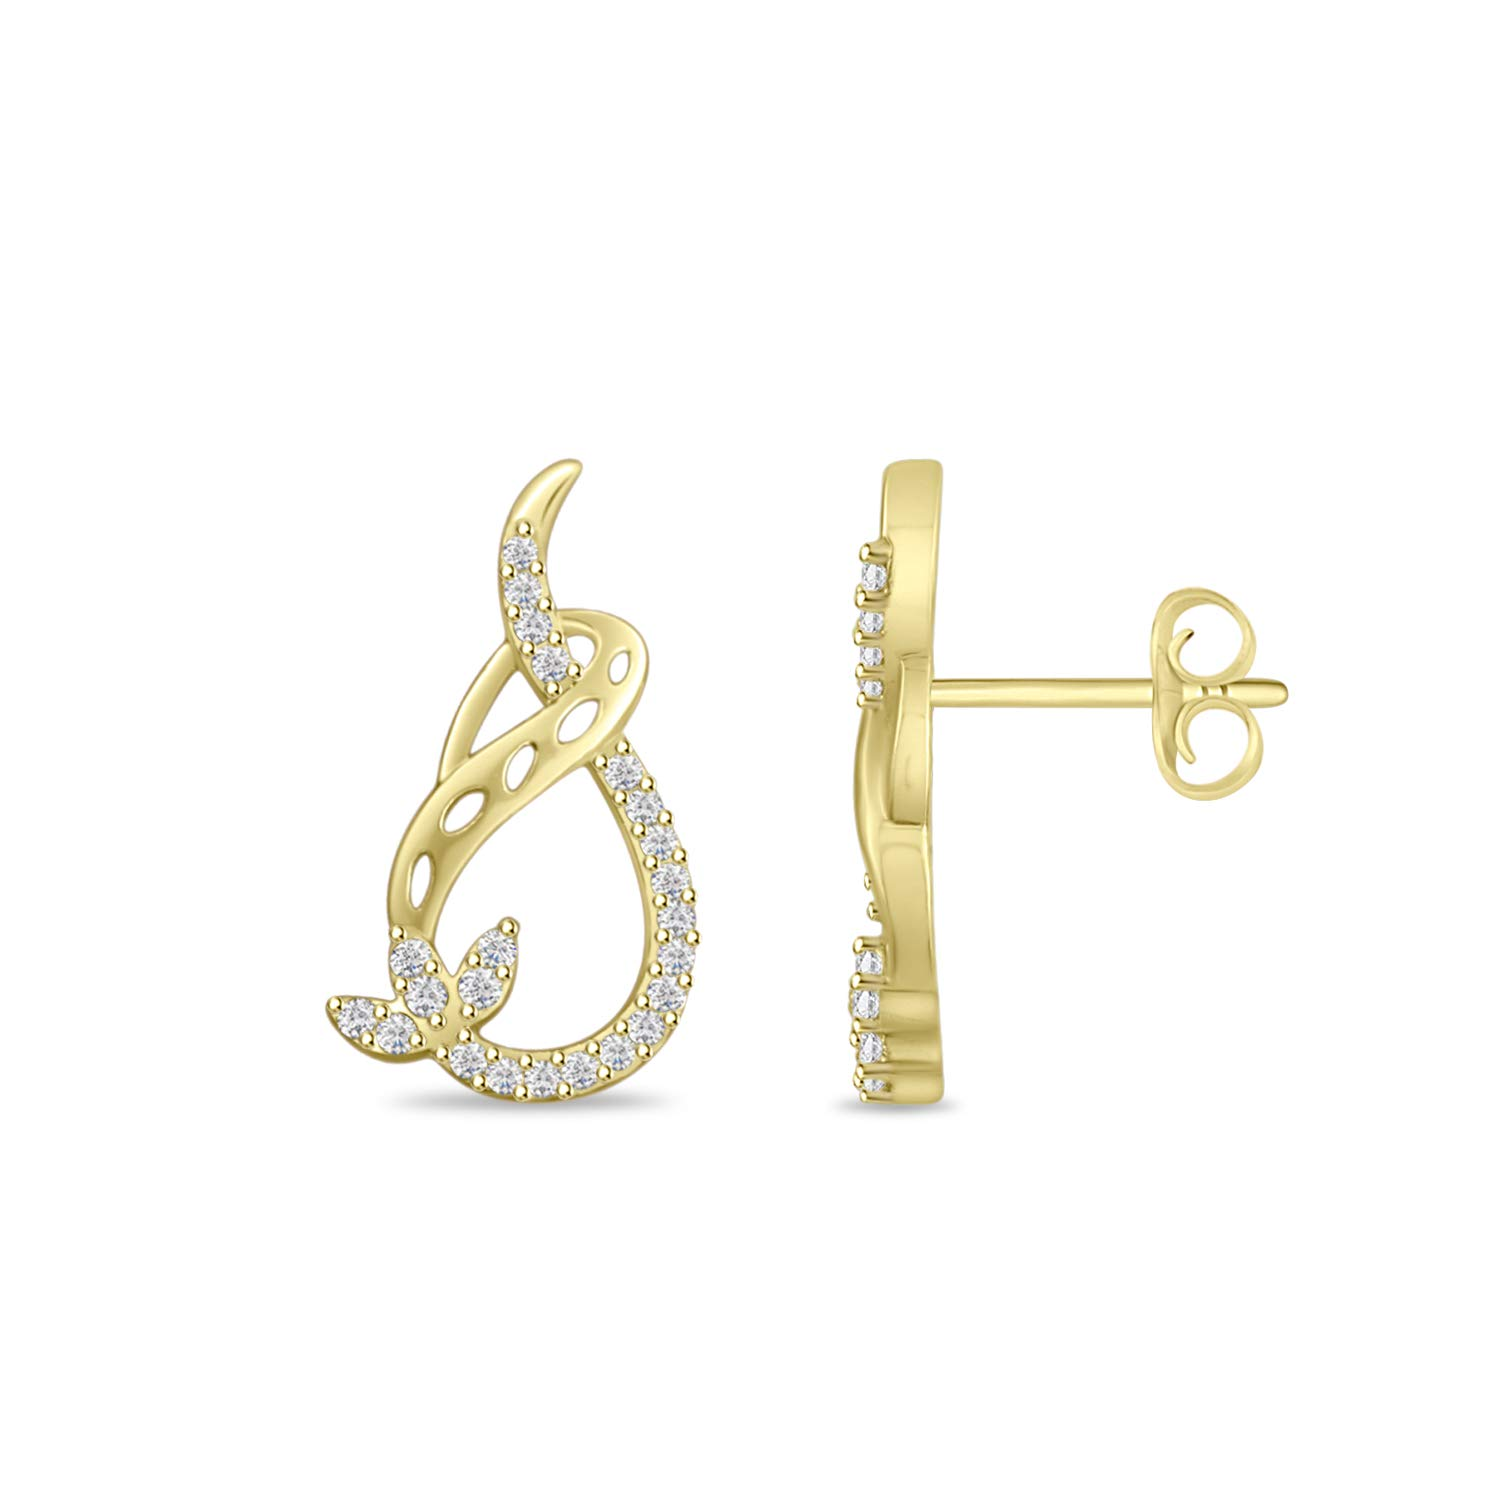 Round Cubic Zirconia Half Infinity Pear Shape Stud Earrings in 14k Gold Finish